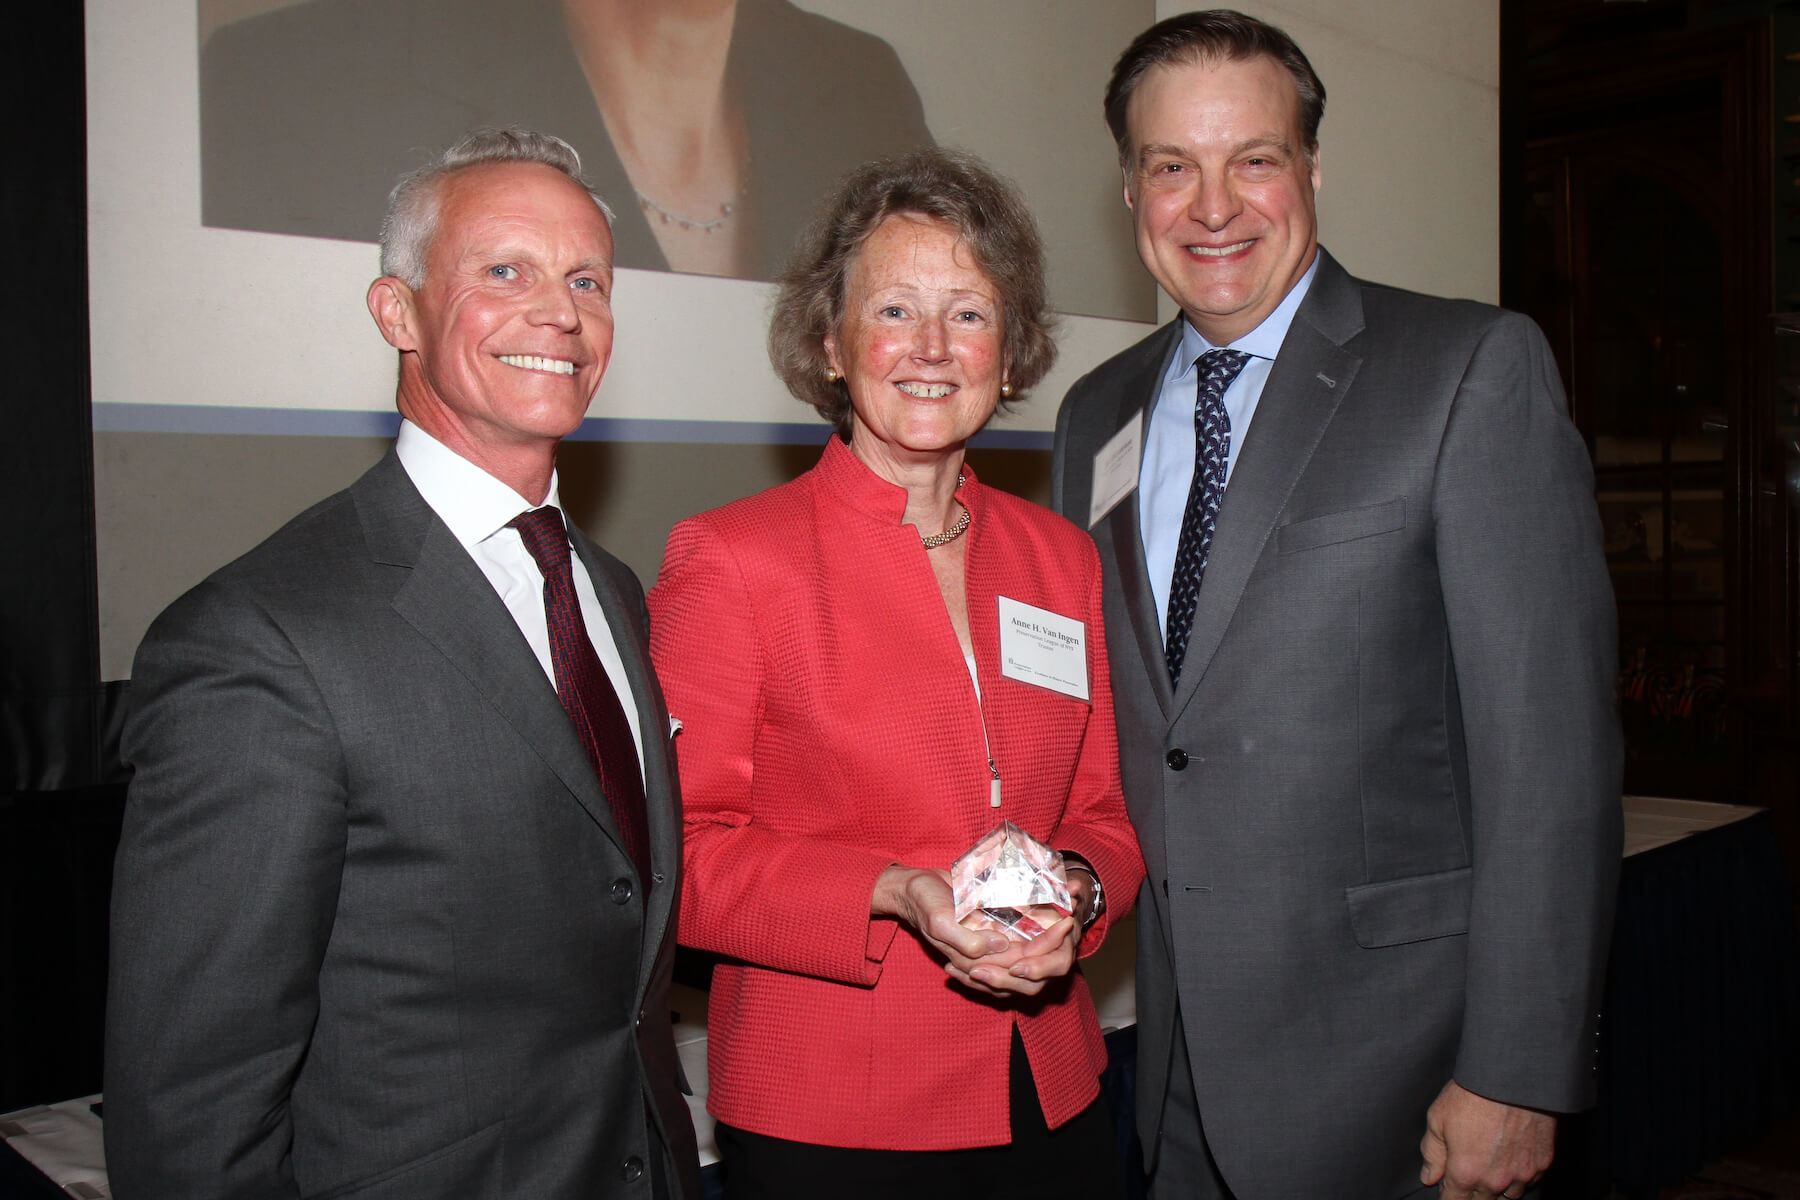 Outgoing Board Chair Anne Van Ingen (center) with current Board Chair Paul Provost and  Jay DiLorenzo